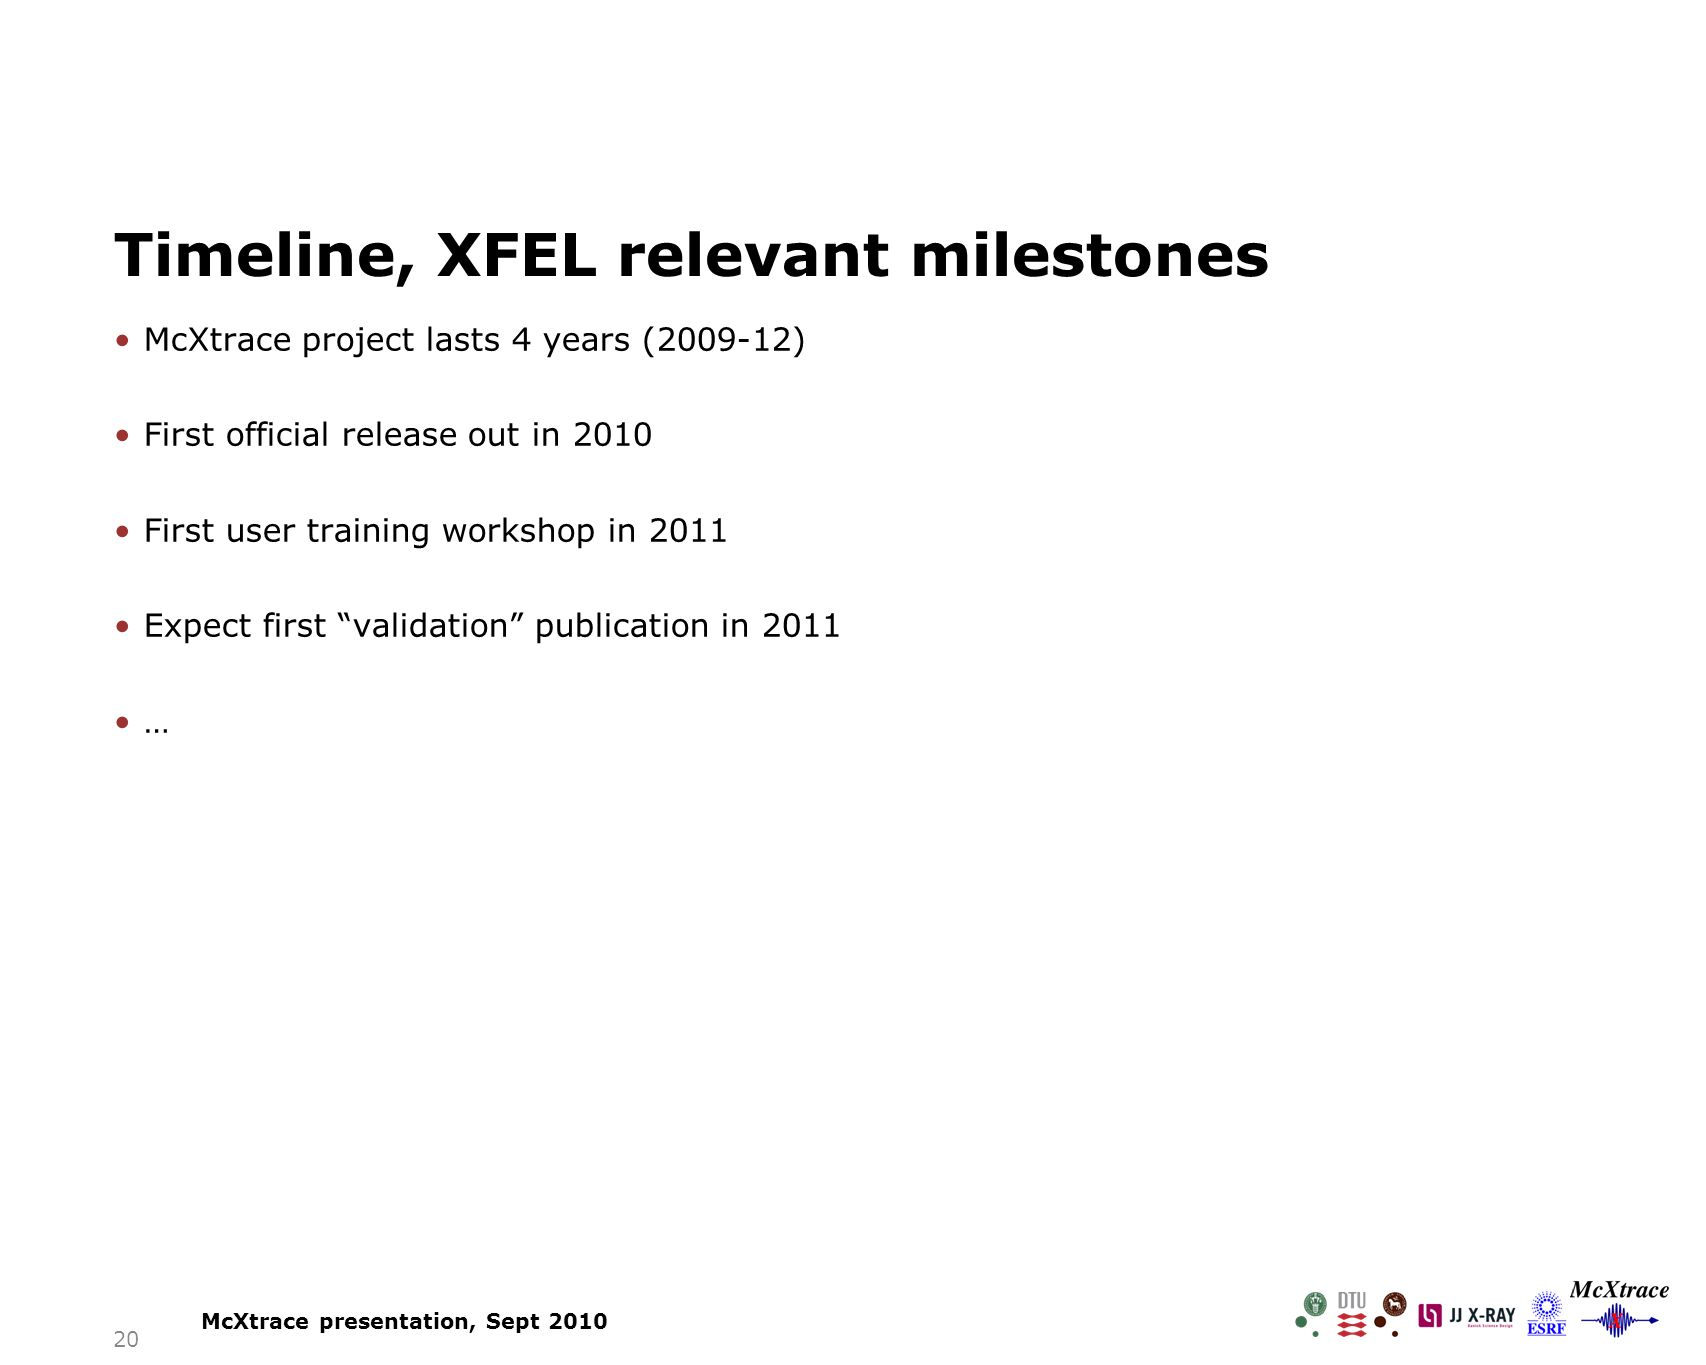 McXtrace project lasts 4 years (2009-12) First official release out in 2010 First user training workshop in 2011 Expect first validation publication in 2011 … 20 Timeline, XFEL relevant milestones McXtrace presentation, Sept 2010